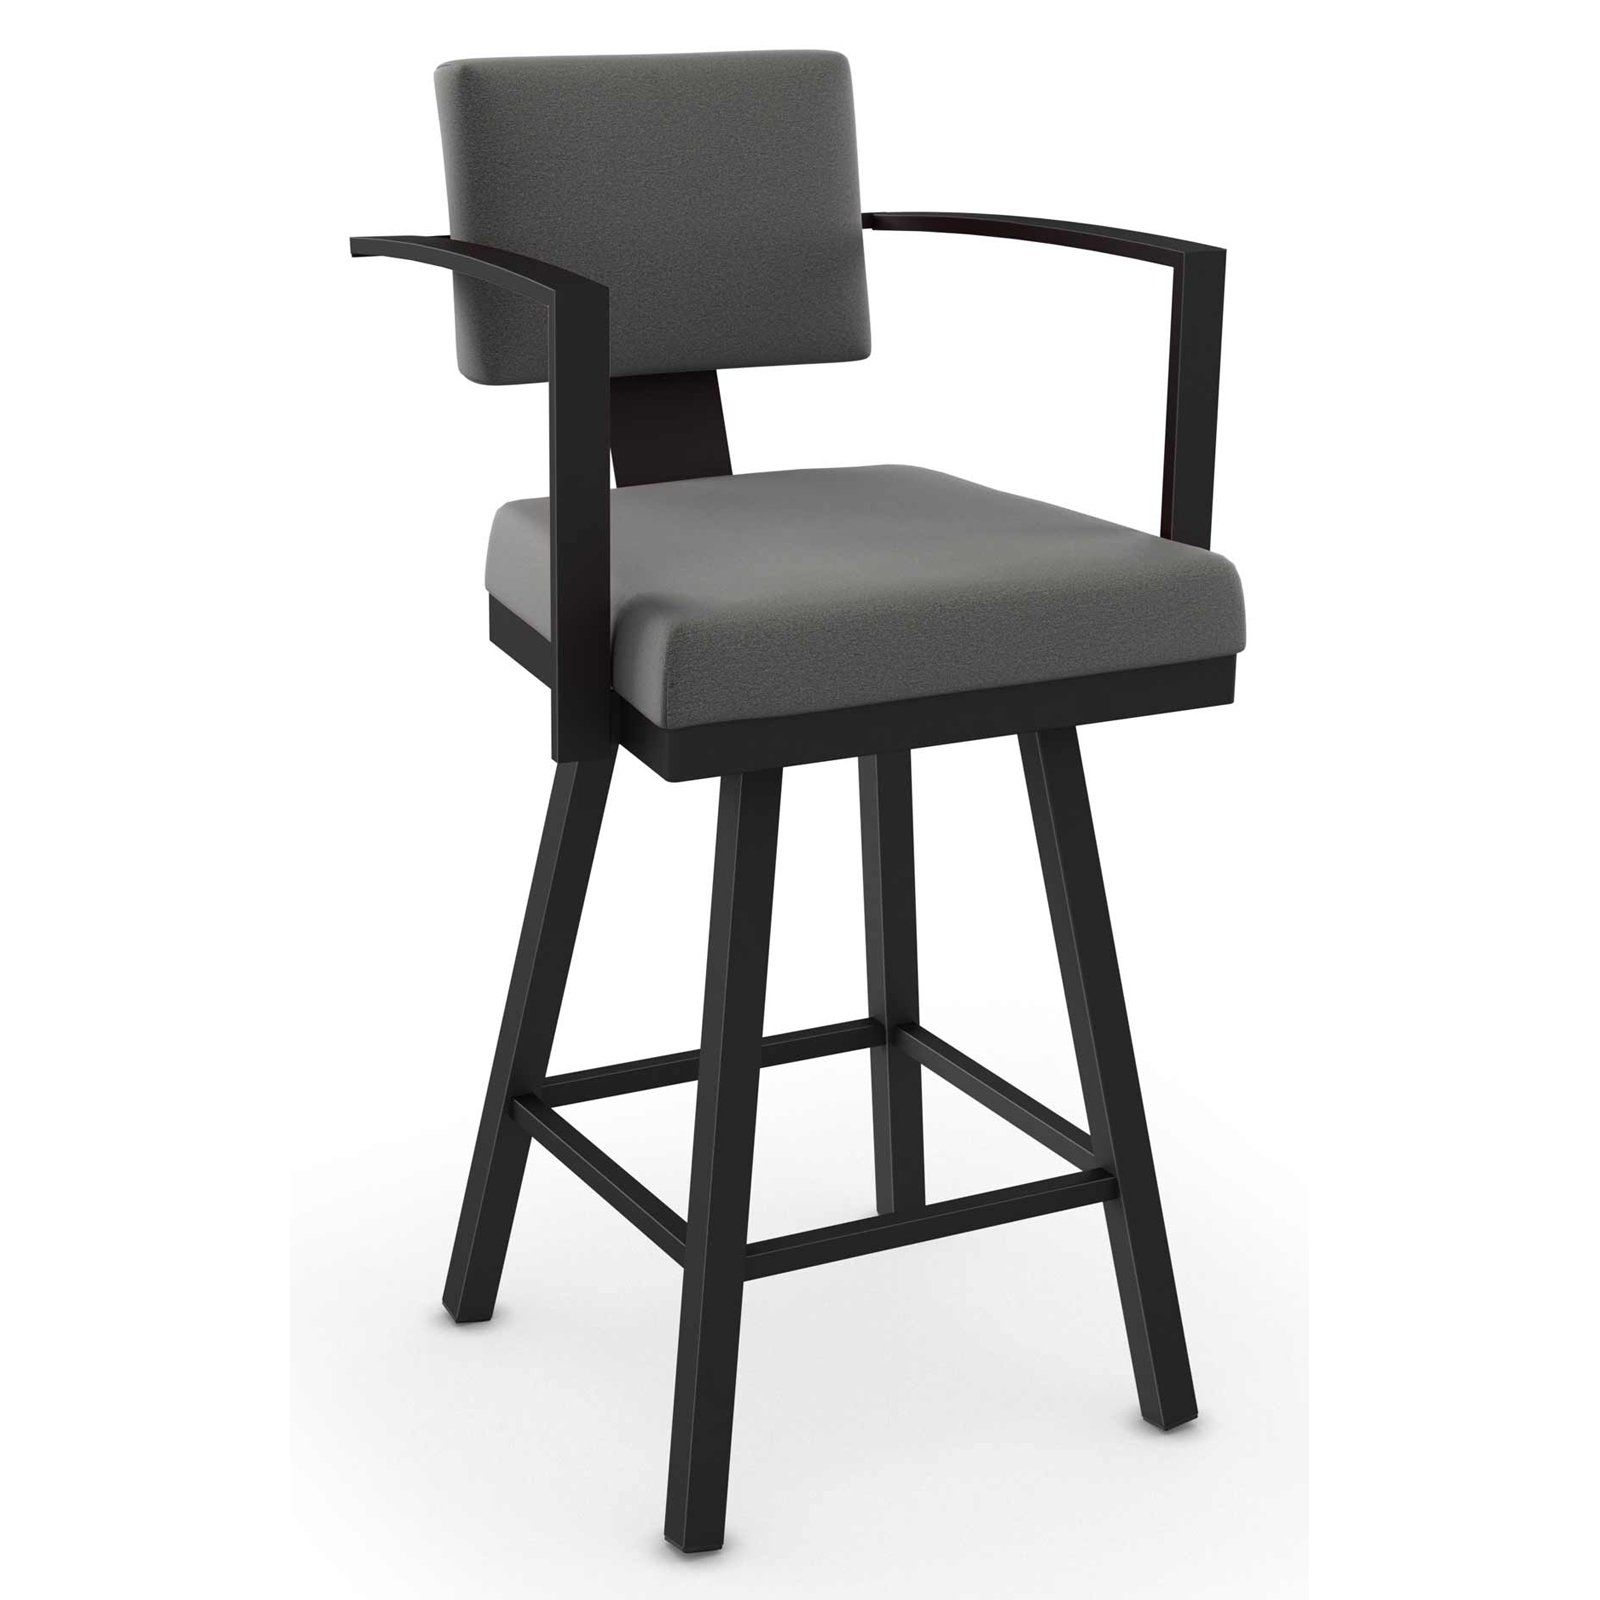 Strange Amisco Akers Swivel Bar Stool With Arms 30 In Products In Creativecarmelina Interior Chair Design Creativecarmelinacom